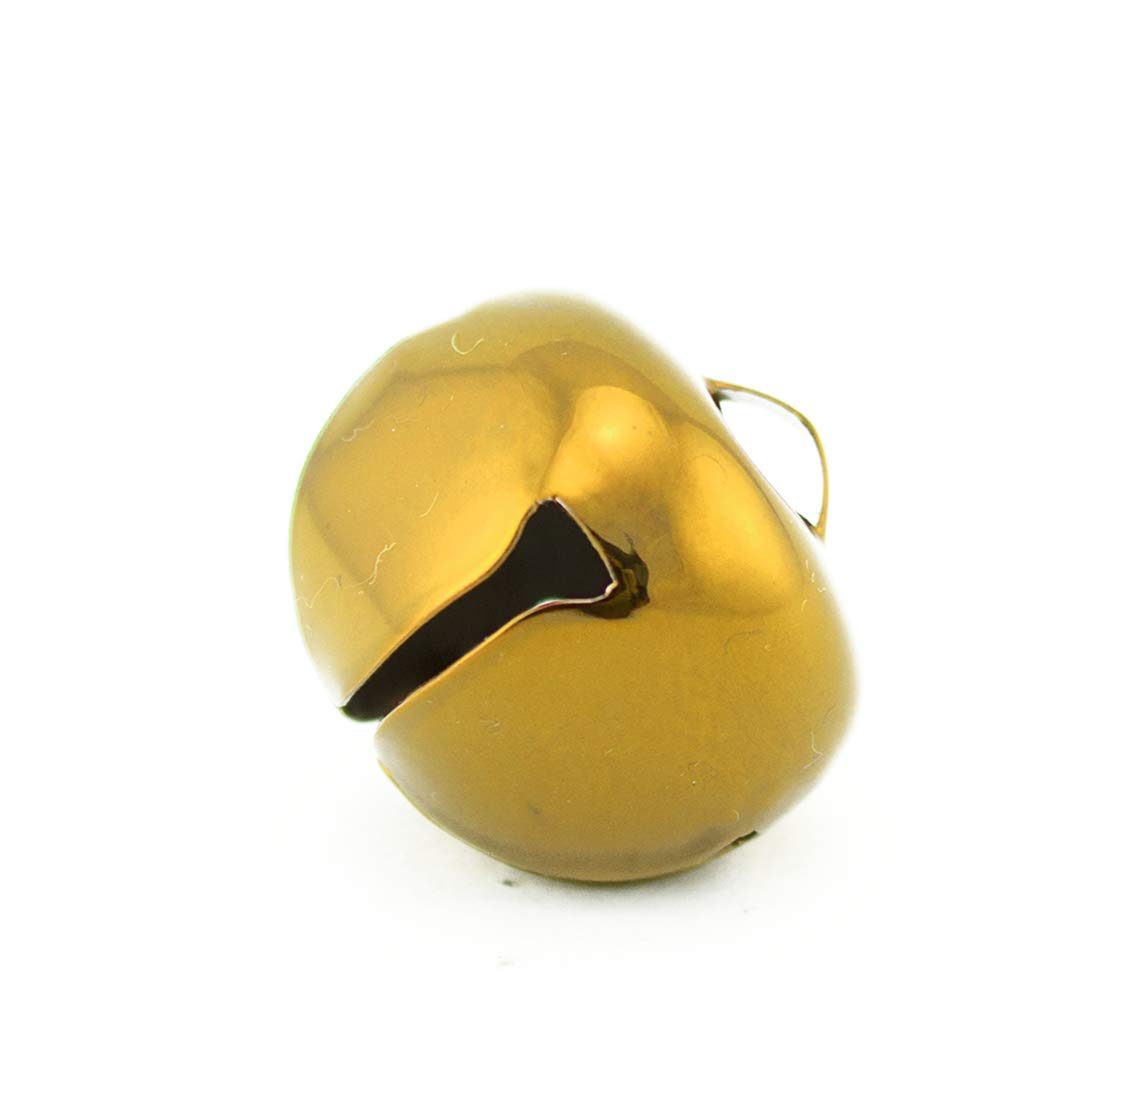 1.5 Inch 36mm Extra Large Giant Jumbo Craft Gold Jingle Bells Bulk 100 Pieces by Art Cove (Image #2)